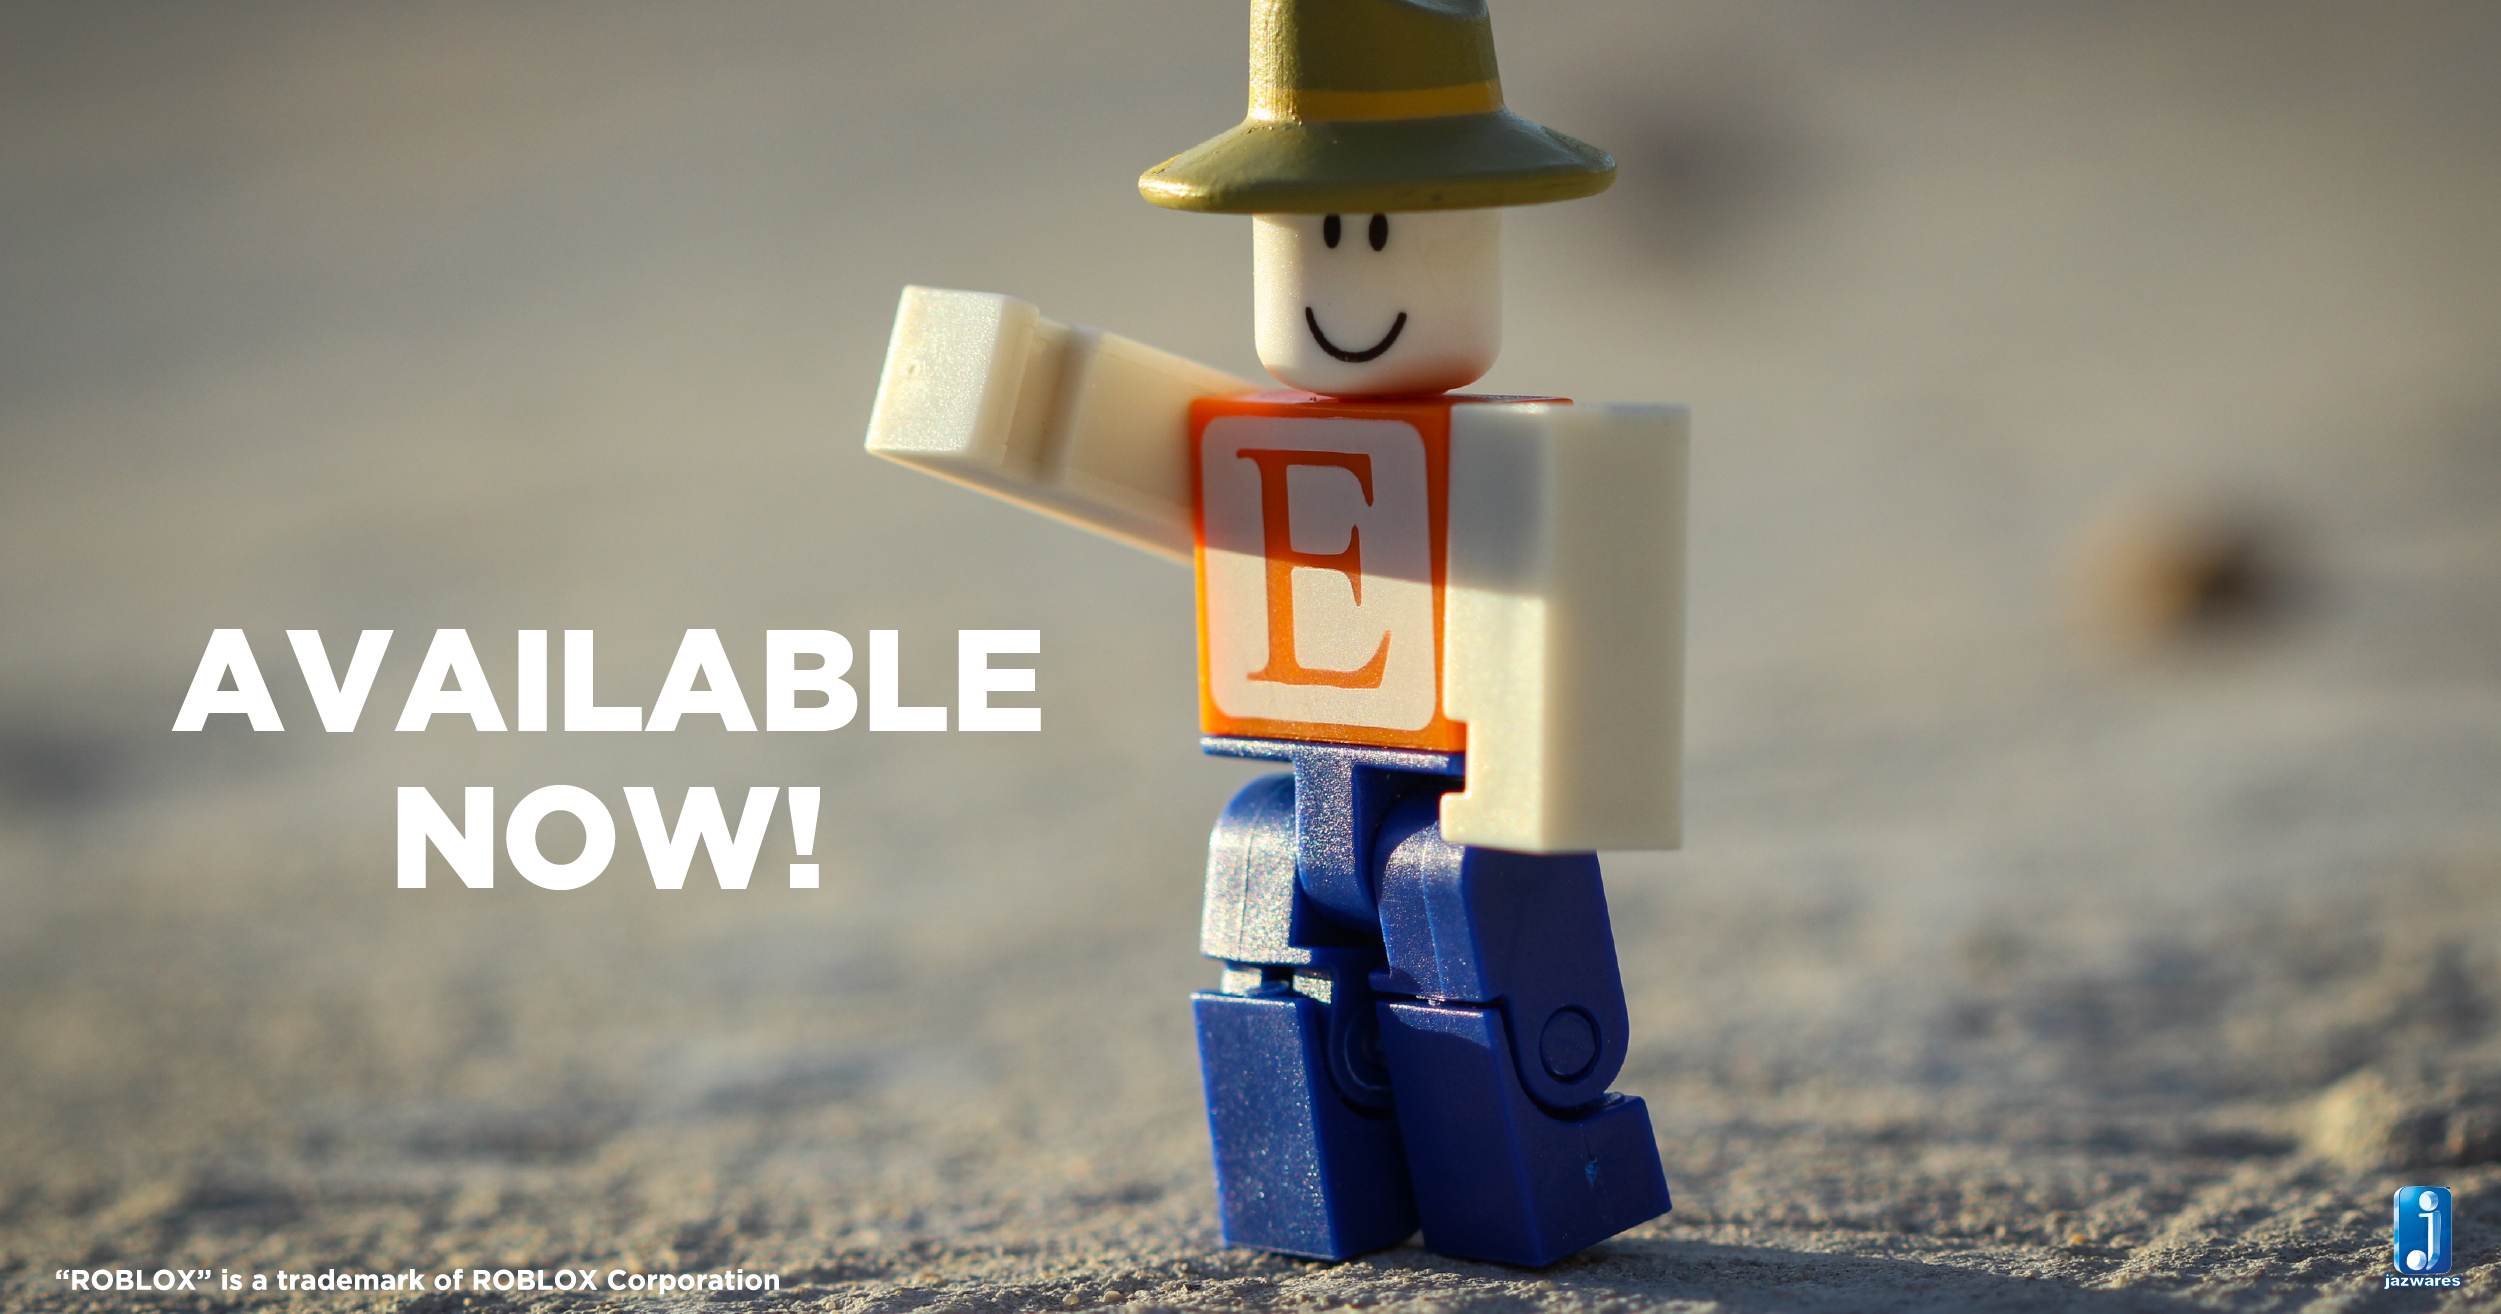 Our Roblox Erik Cassel Figure Is One Of The Many In Stores And